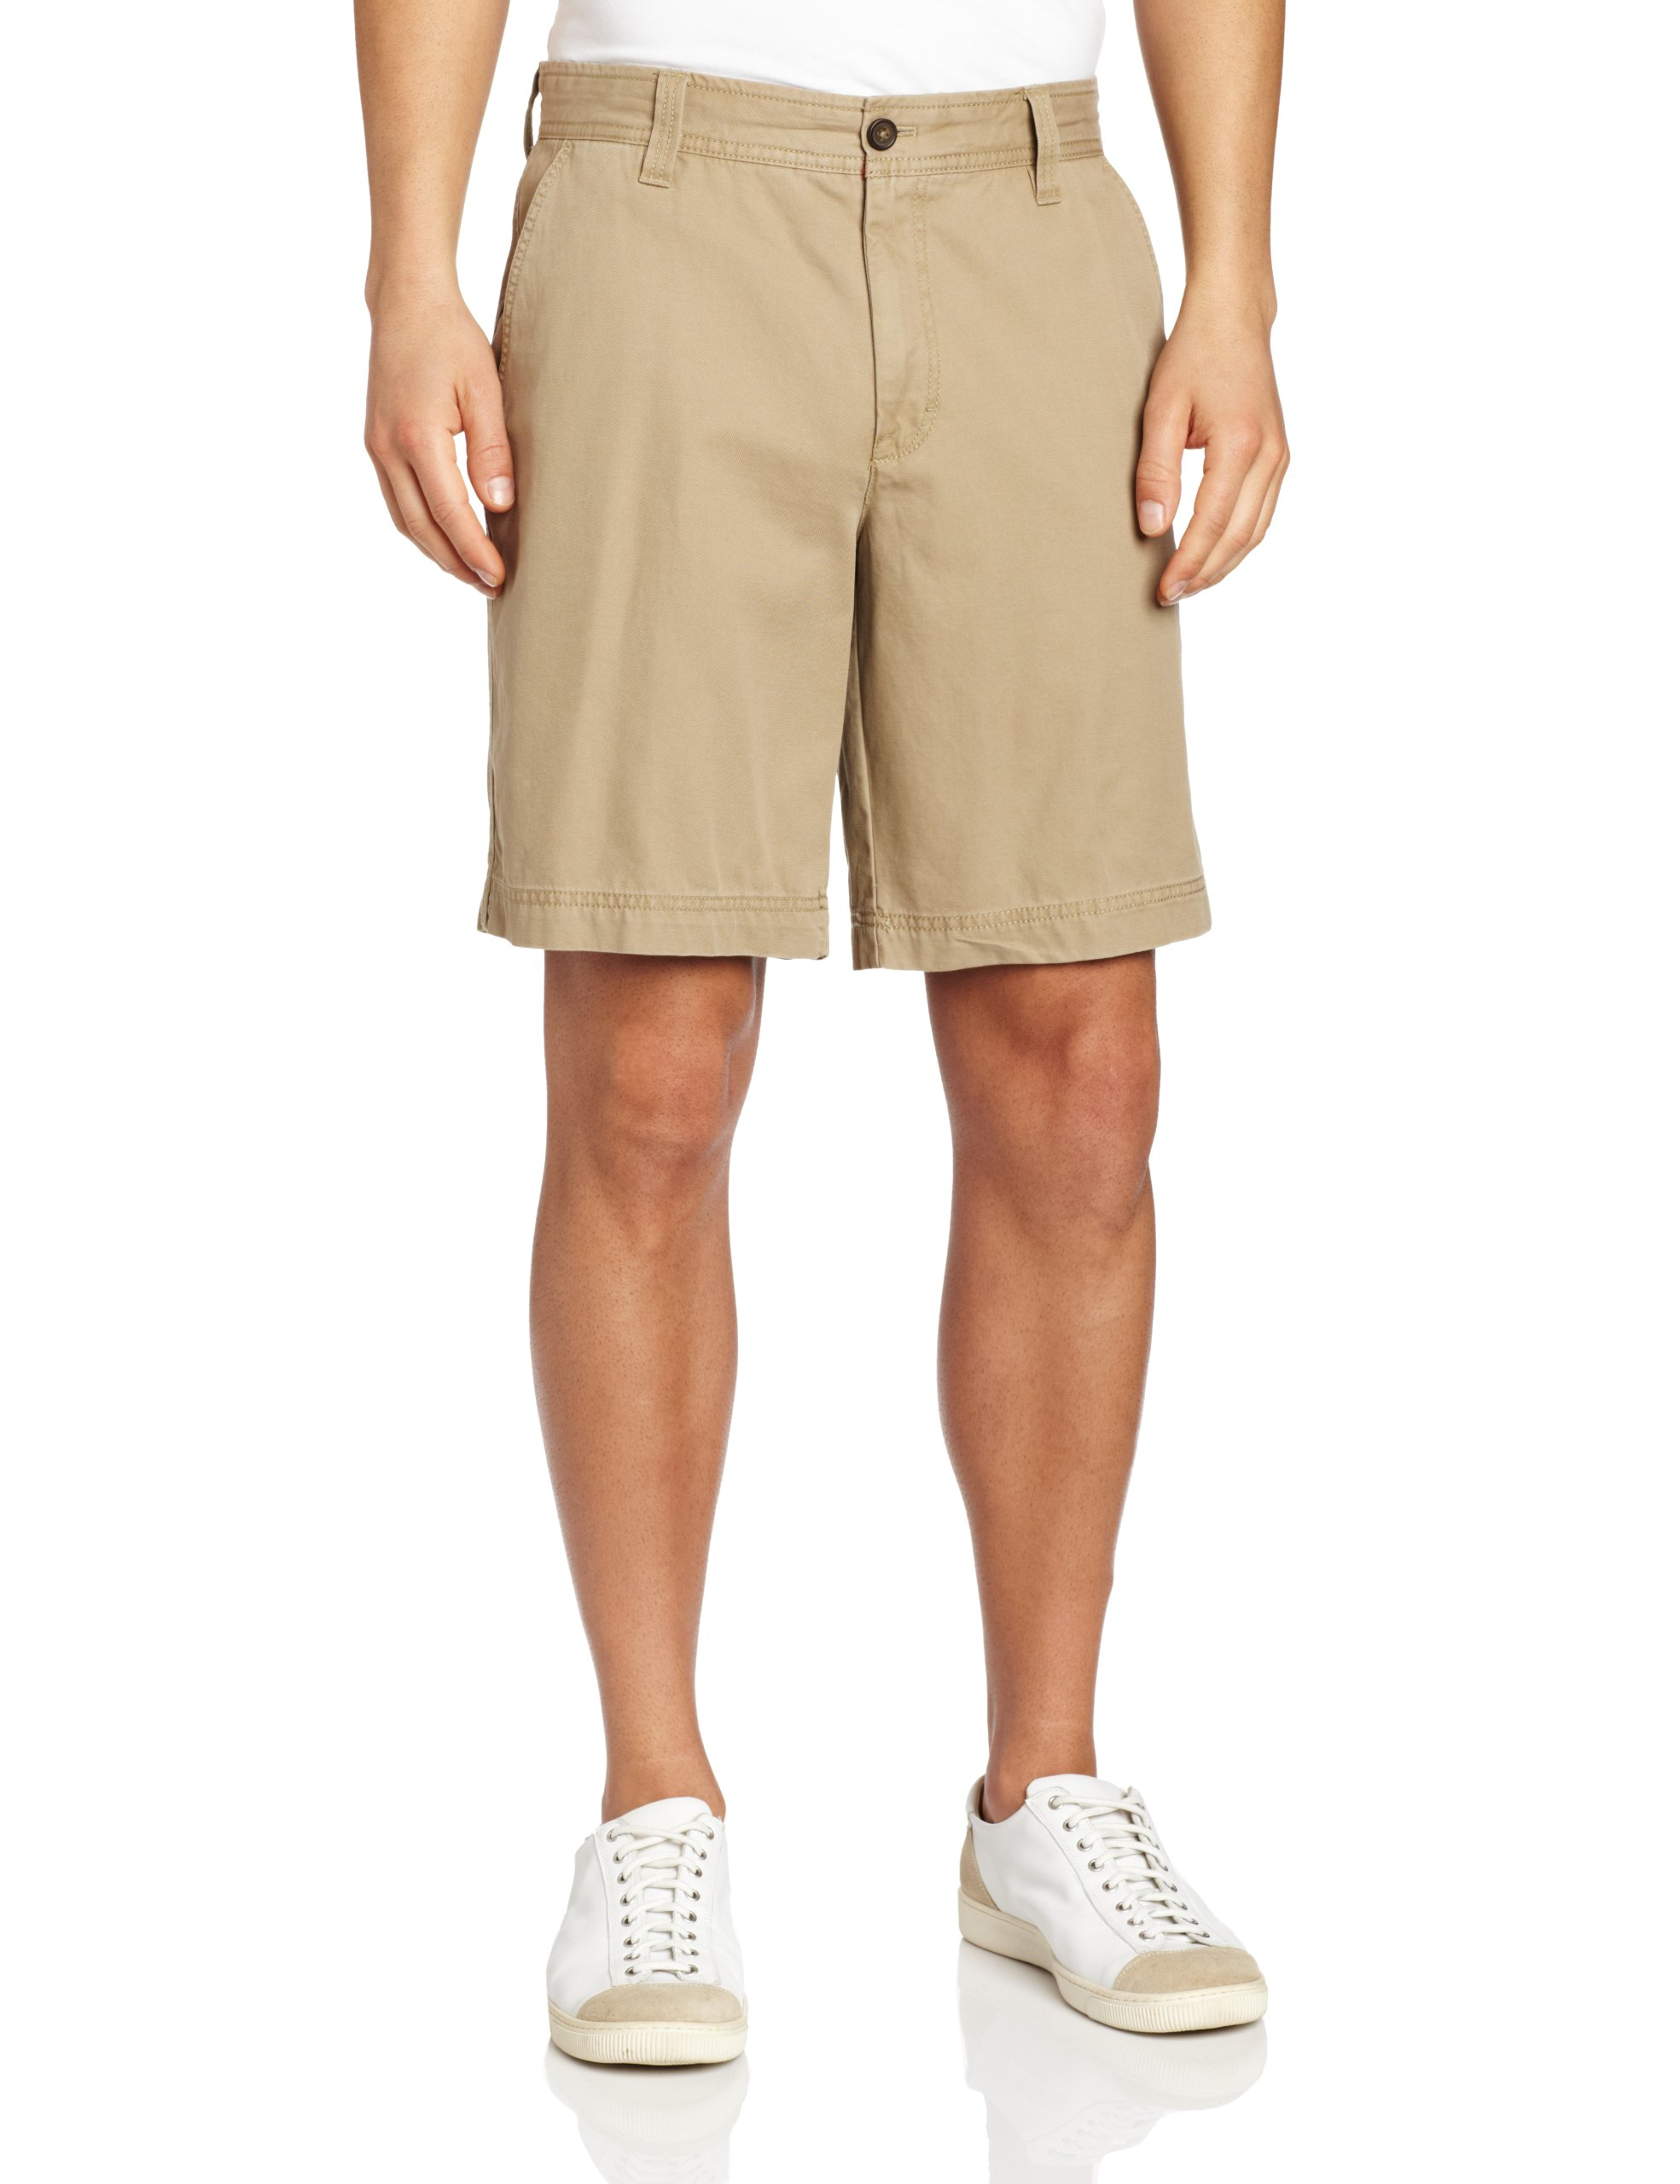 IZOD Men's Saltwater Flat Front Short, True Cedarwood Khaki, 42W